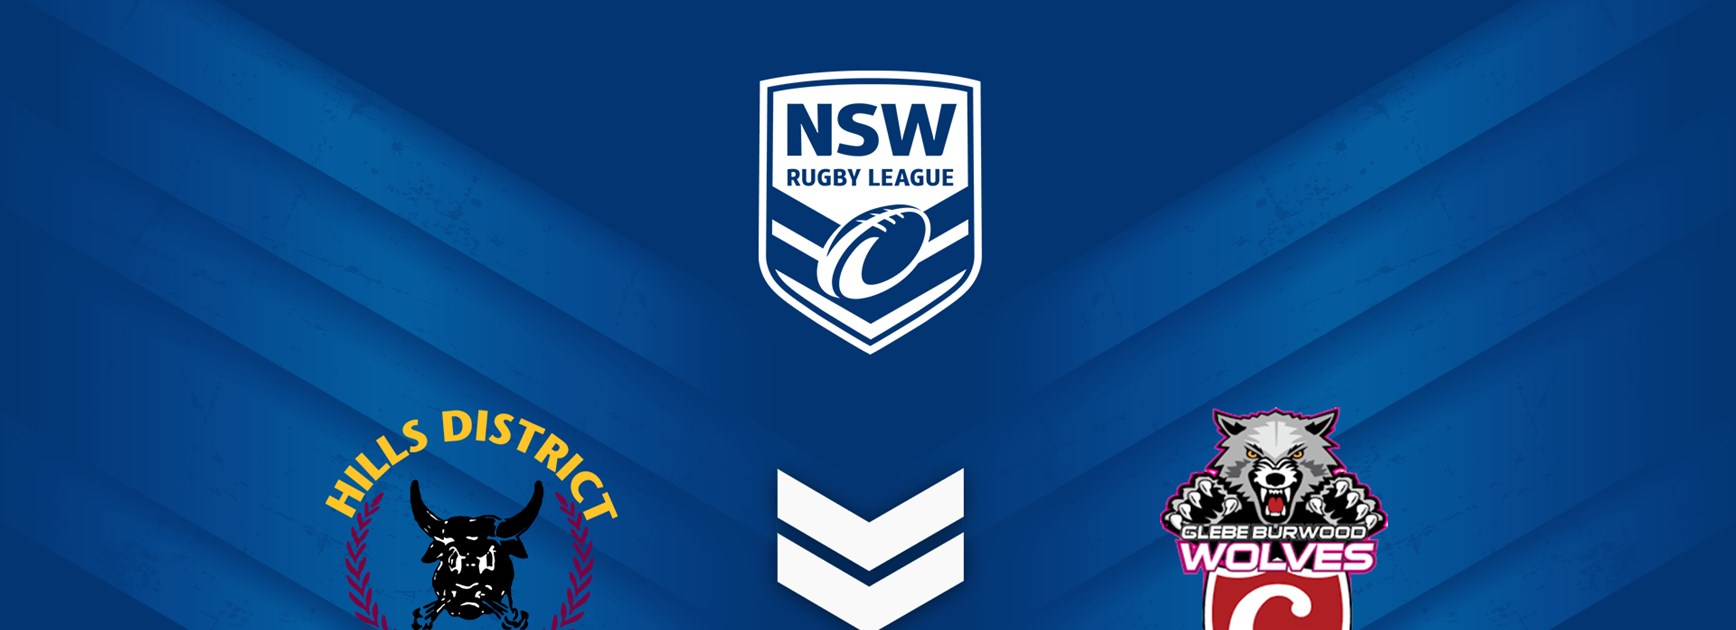 LIVE STREAM | Hills District v Glebe Burwood Rd 4